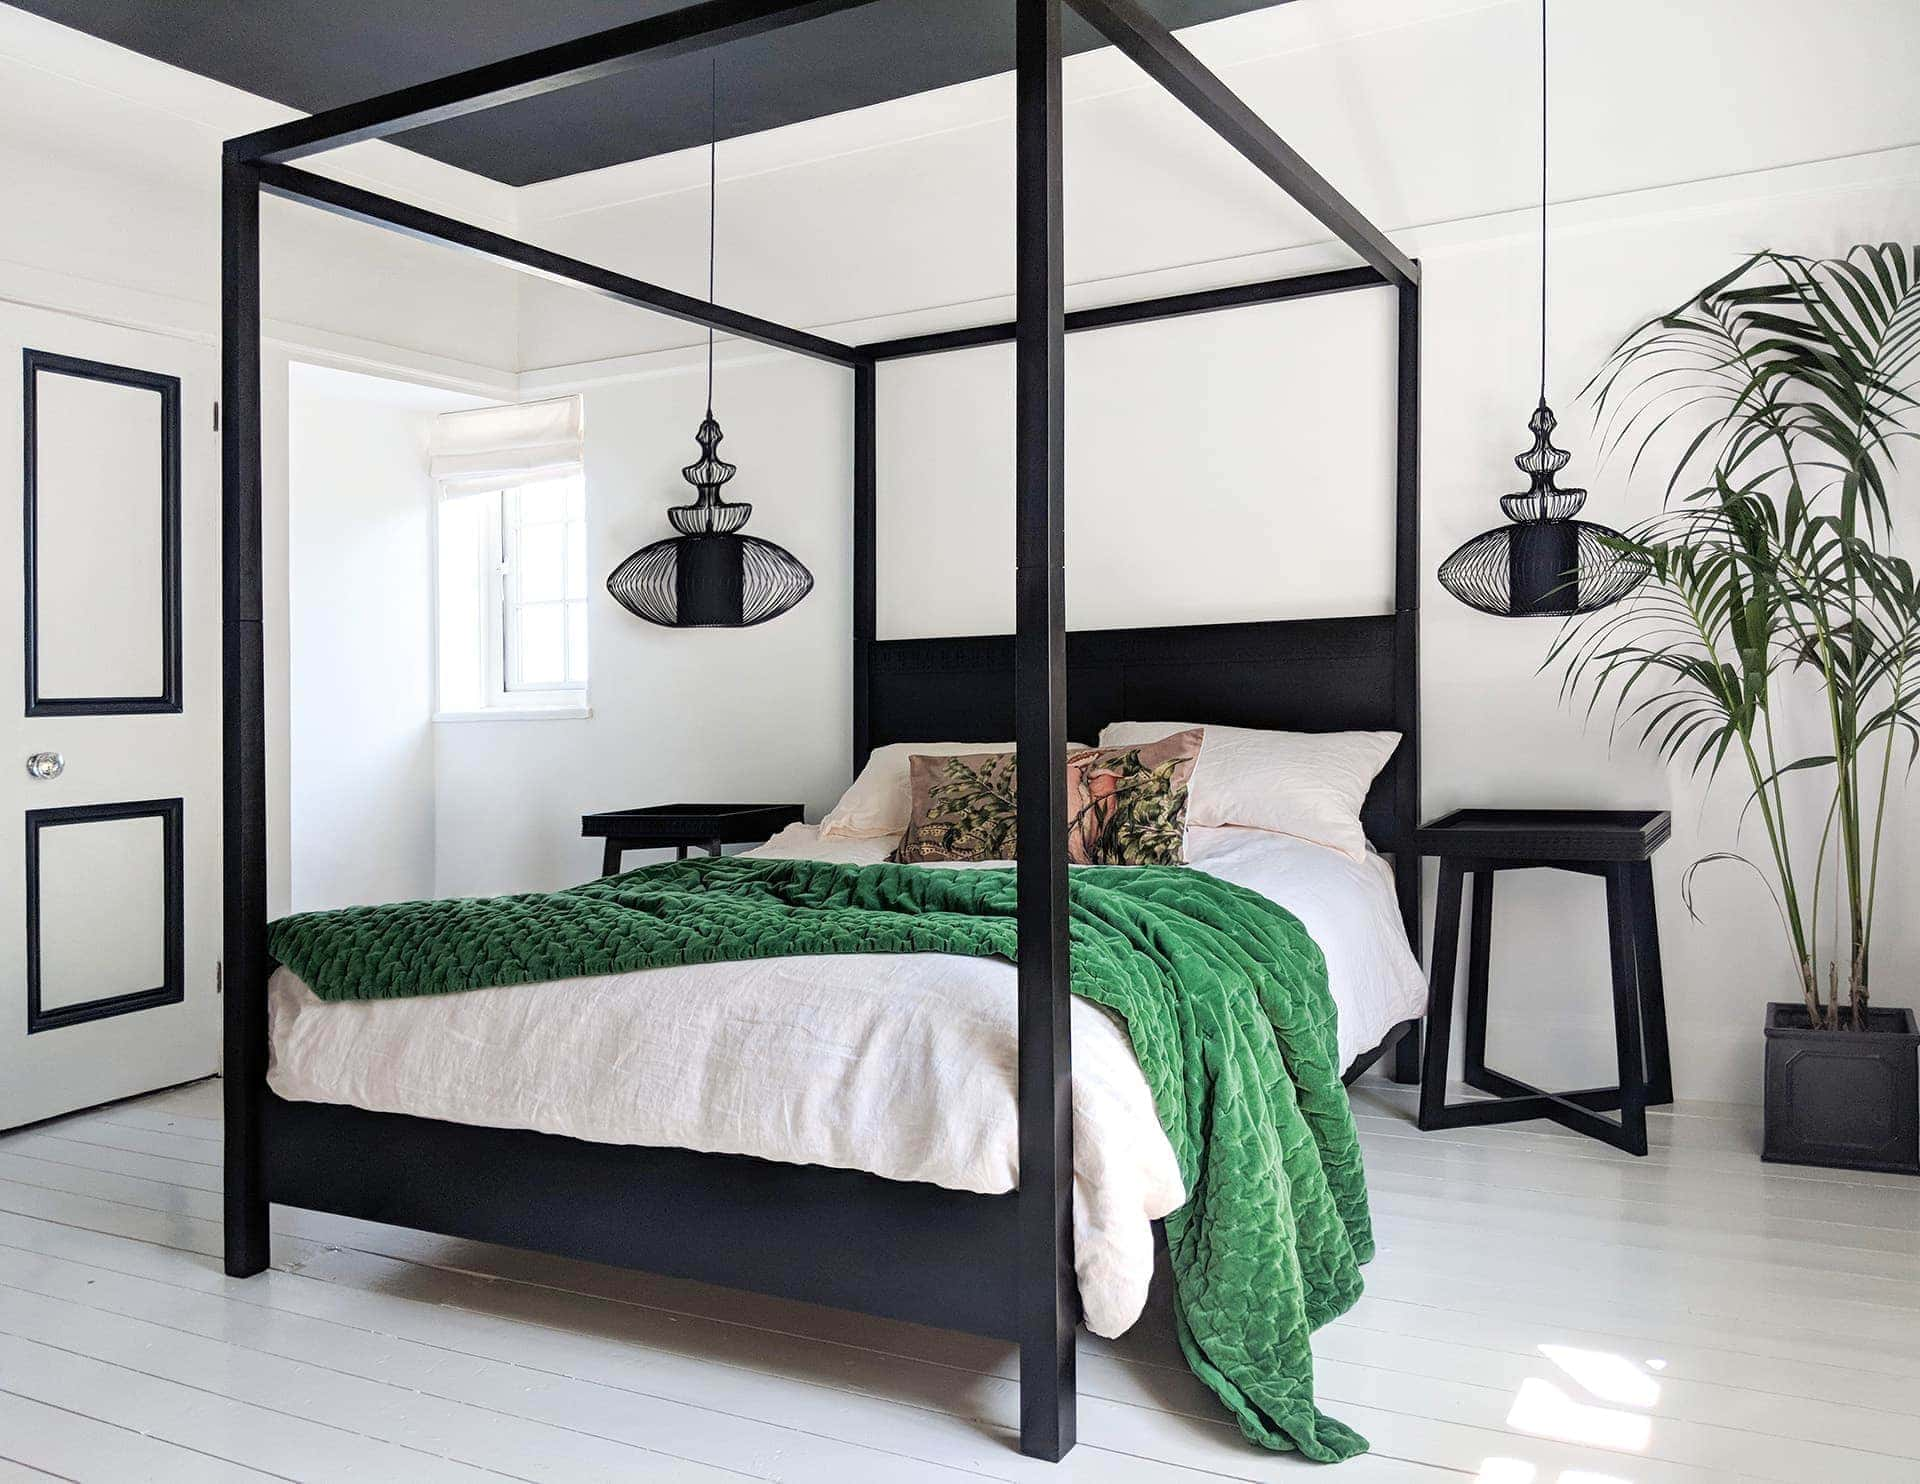 black-tribal-pendant-lights-hanging-above-bedside-tables-in-master-bedroom